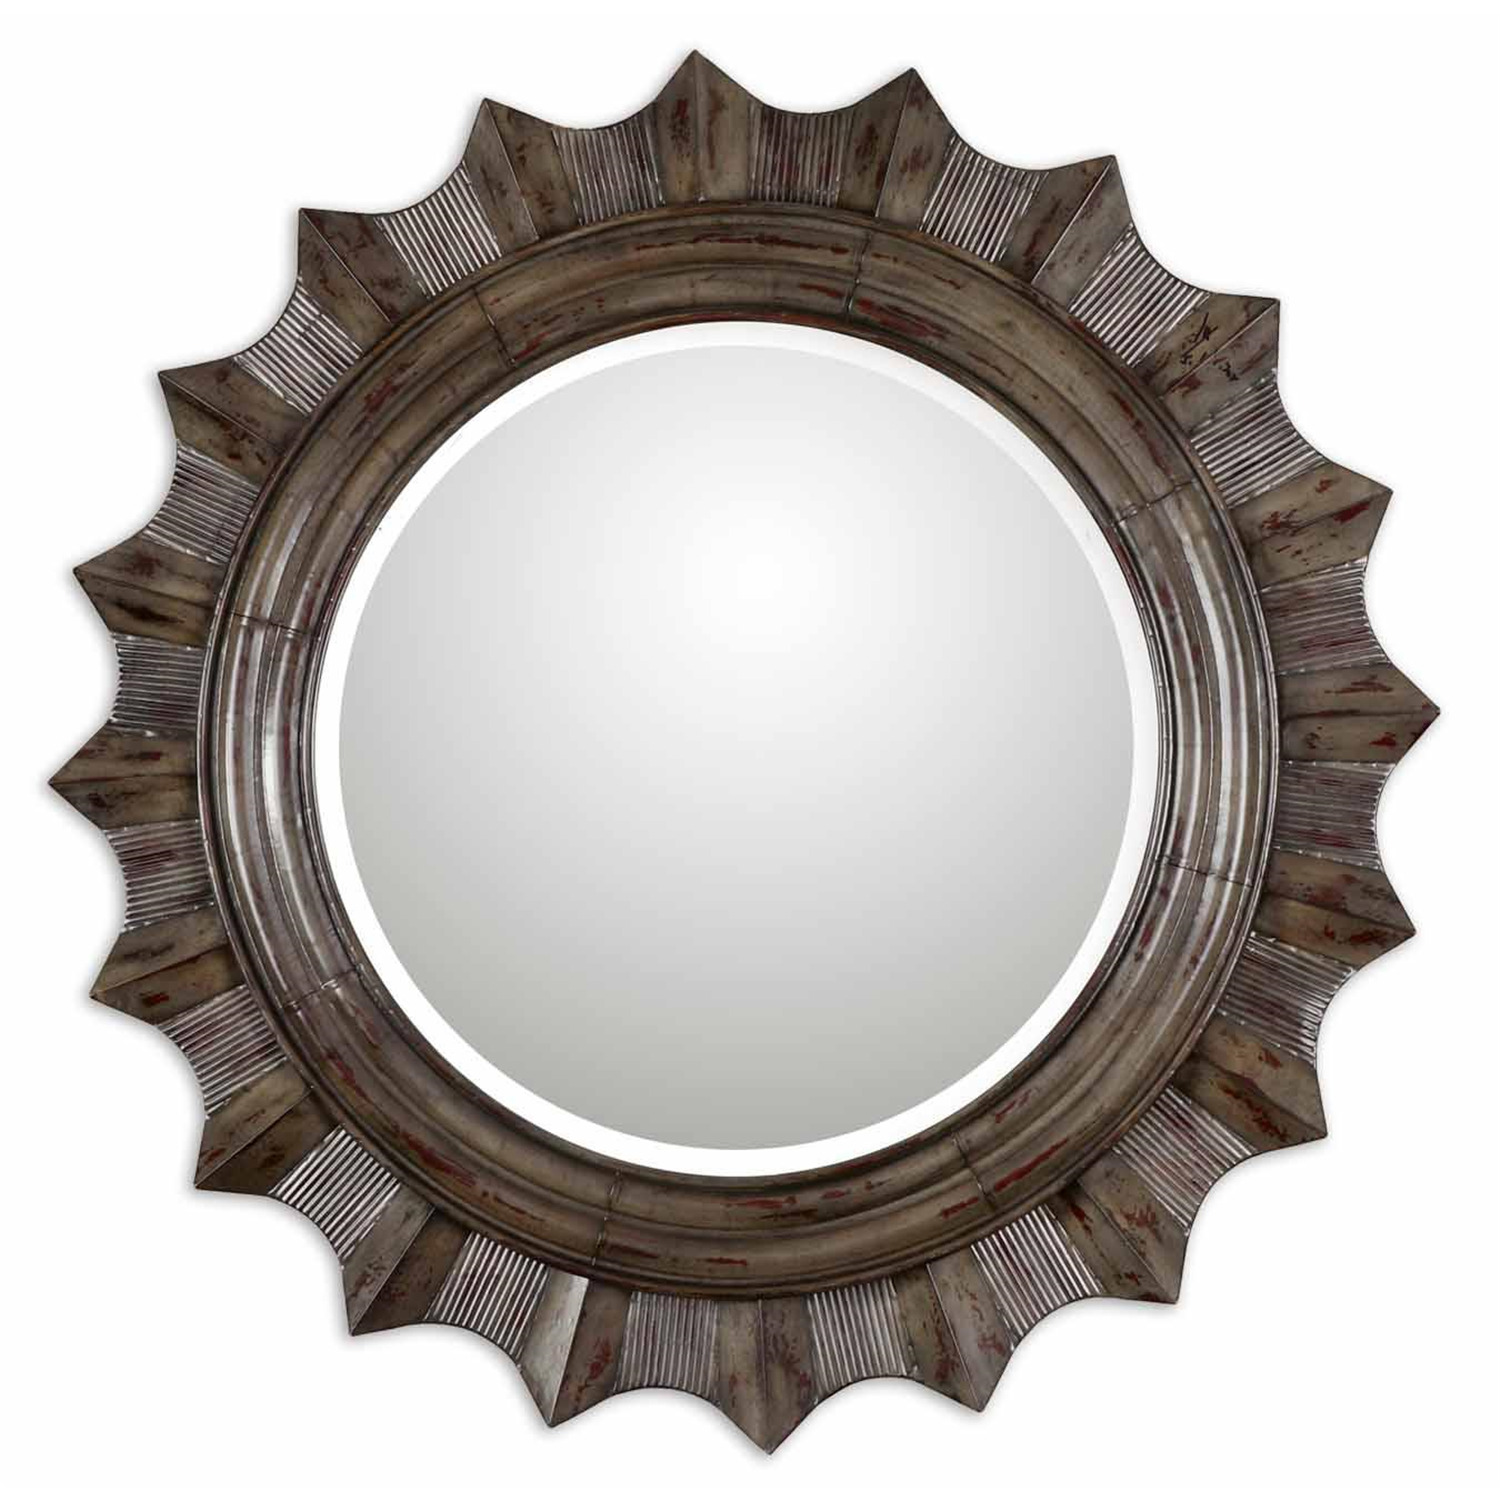 Decorative mirrors large wall mirrors round mirror large for Decorative mirrors